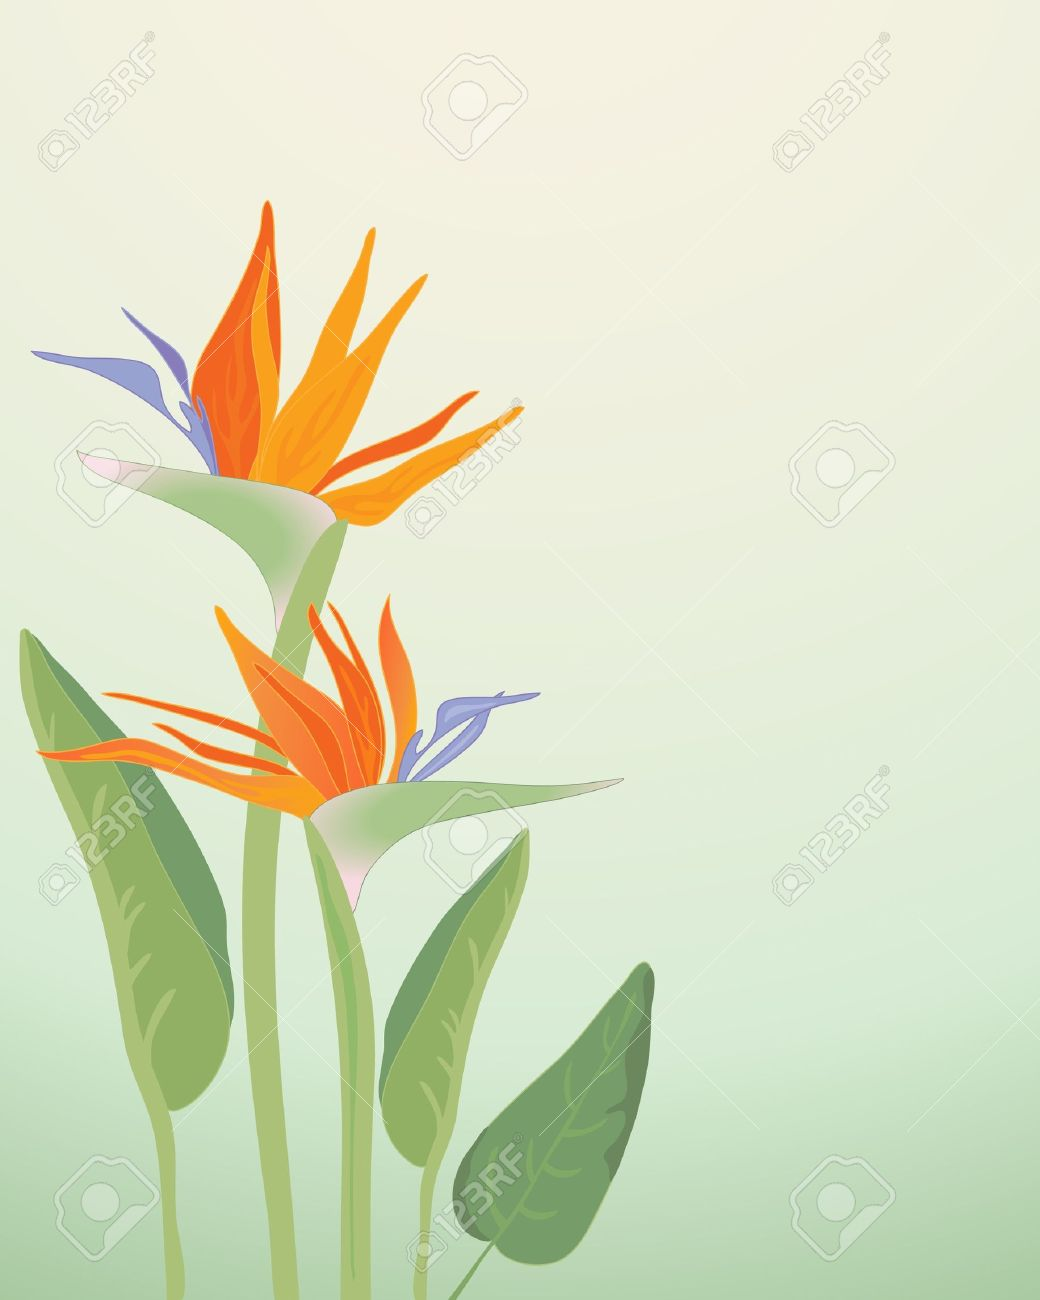 an illustration of strelitzia regina bird of paradise flowers with foliage on a pale green background Stock Vector - 11104887